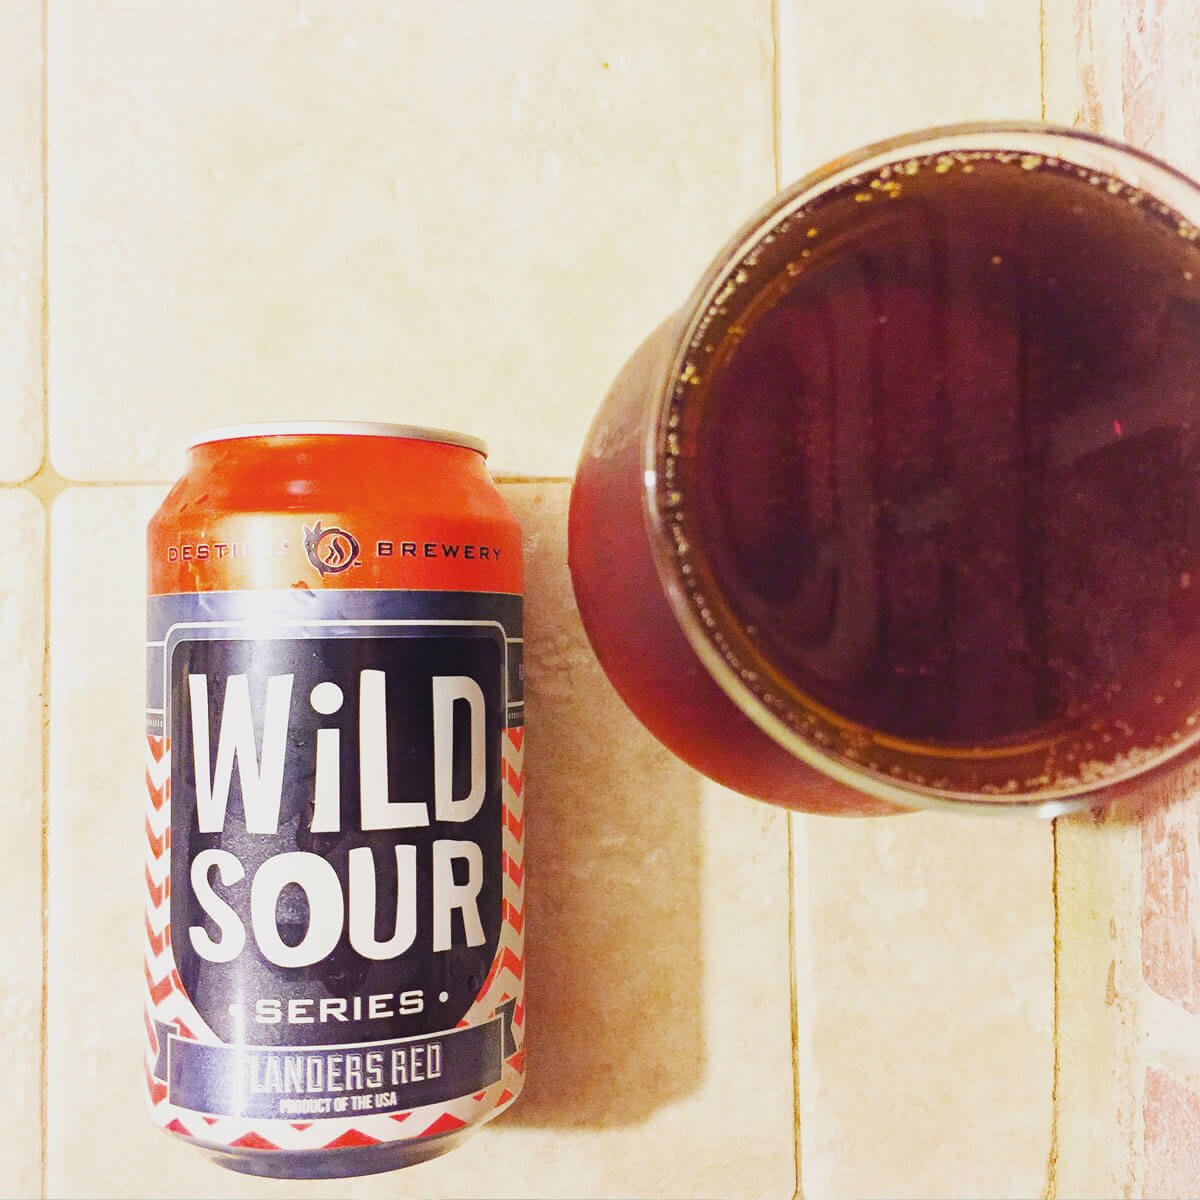 Wild Sour Series Flanders Red Ale is a Belgian-style Flanders Red Ale by DESTIHL Brewery